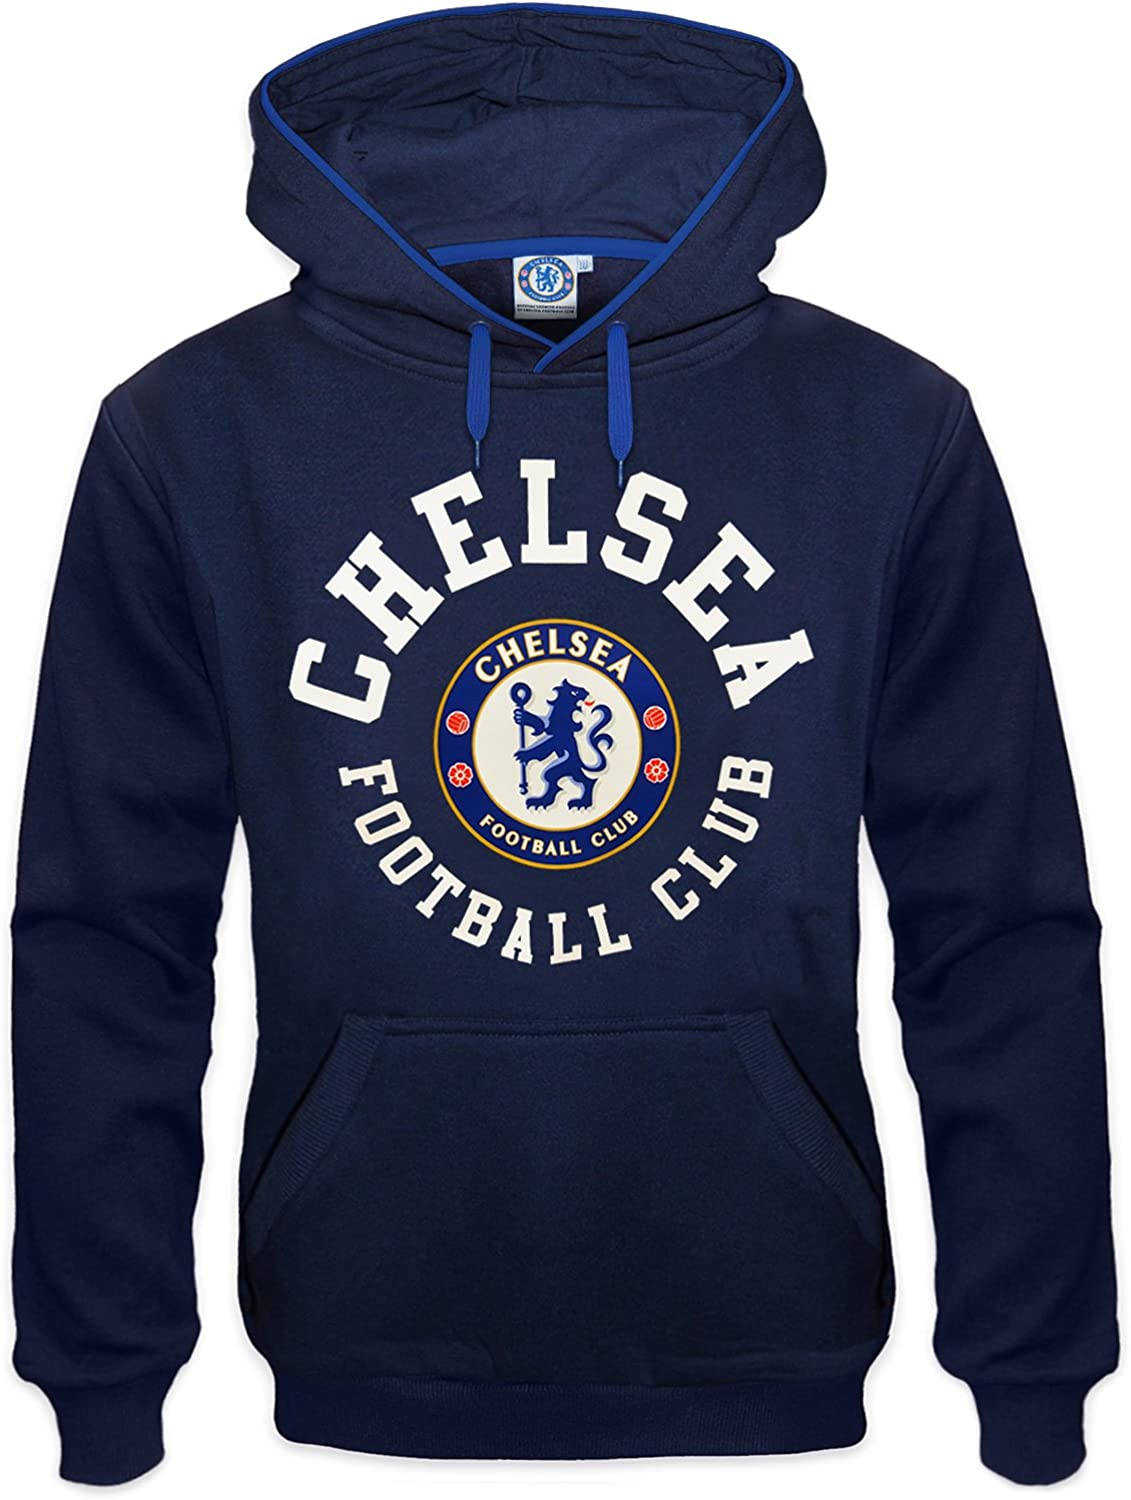 Chelsea 12th Man Fan Hoodie Kids Navy